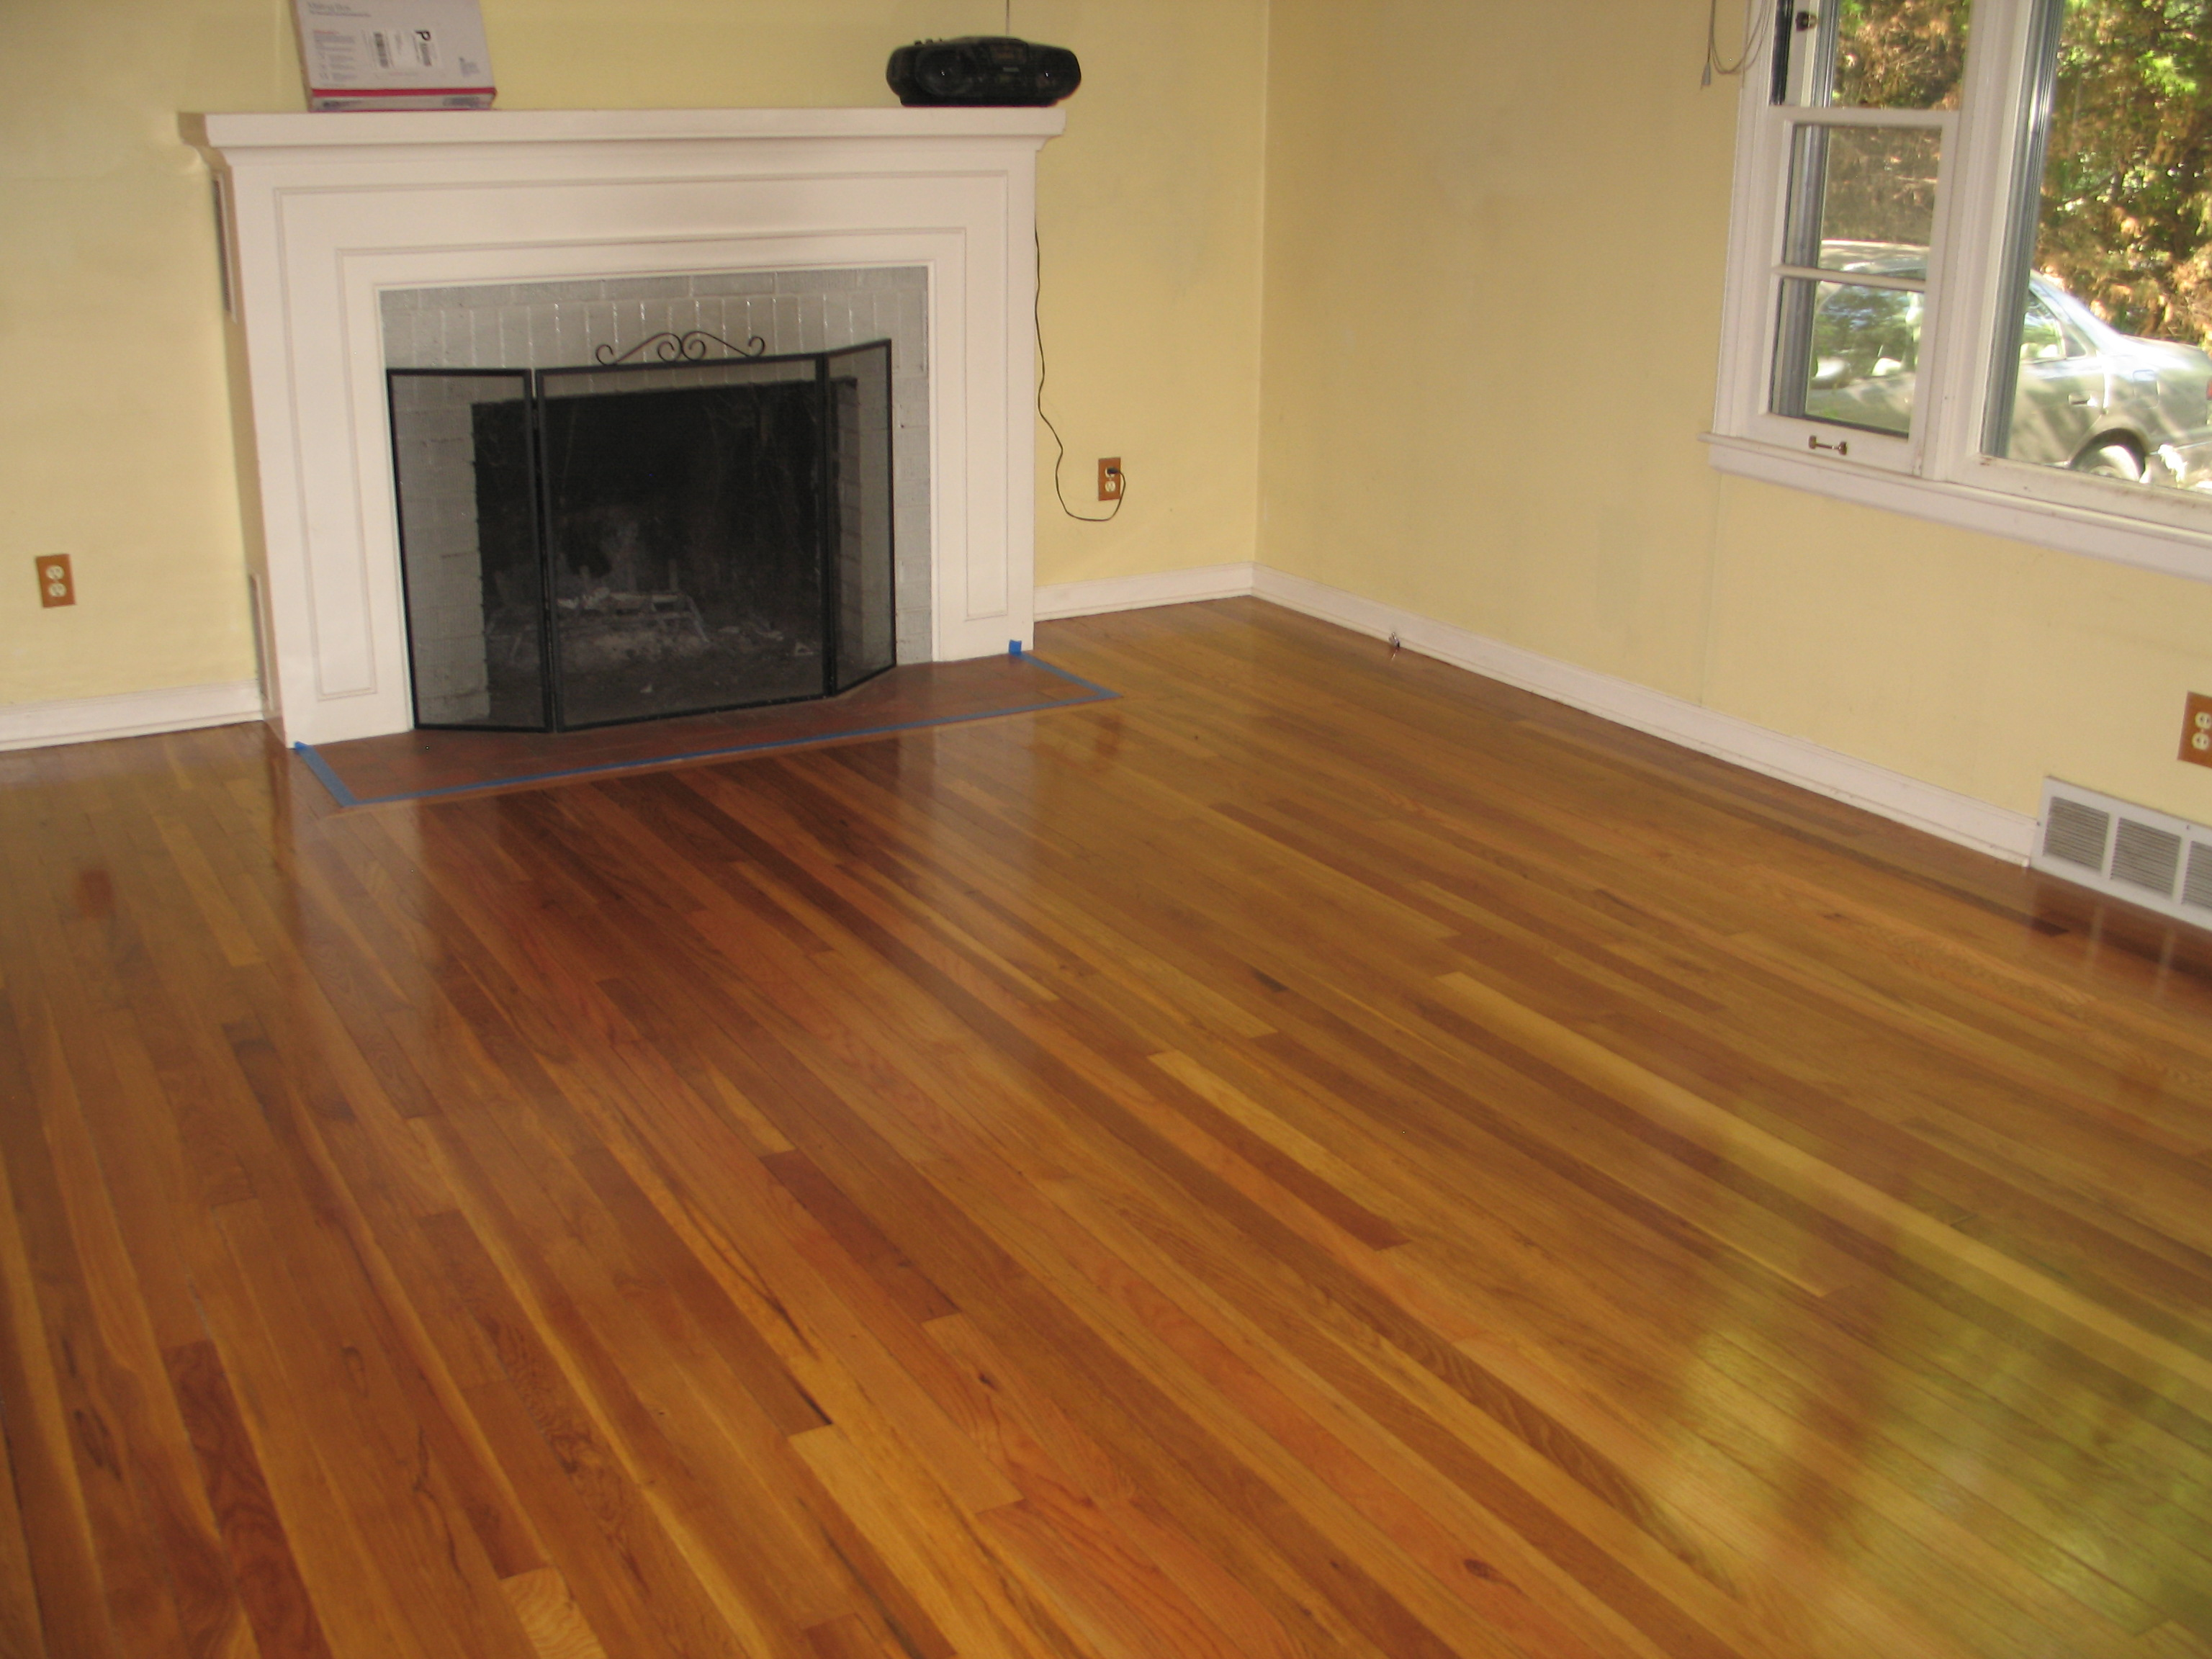 Cost of refinishing hardwood floors flooring ideas home for Resurfacing wood floors